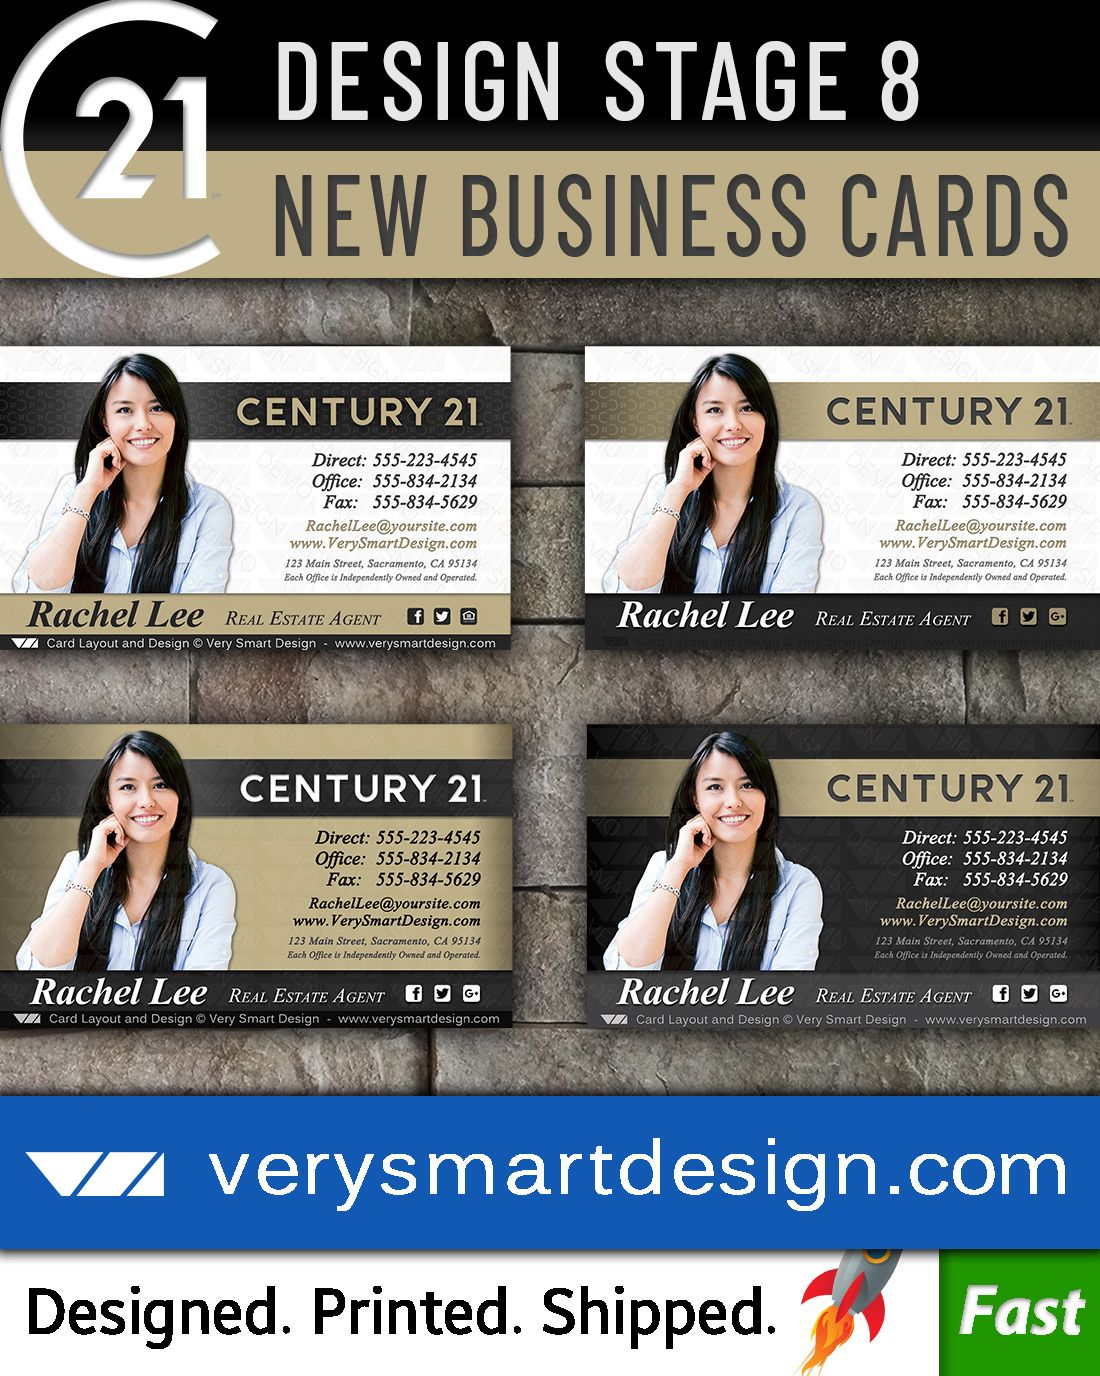 Custom Century 21 Business Card Templates With New C21 Logo 8a Dark Gray And Gold Glossy Business Cards Business Card Template Business Card Photoshop